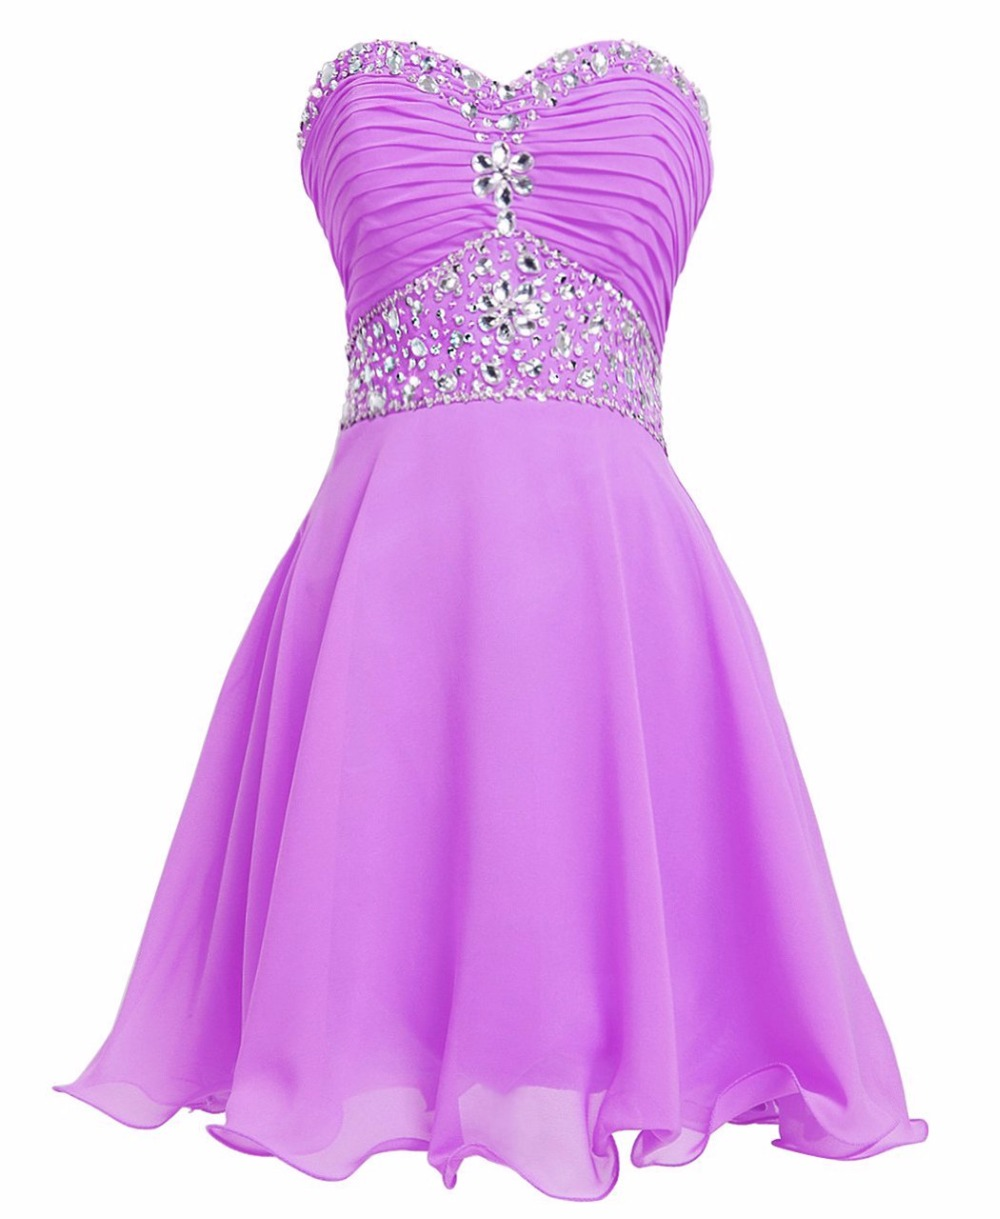 Aliexpress buy sweetheart short bridesmaids dress cheap aliexpress buy sweetheart short bridesmaids dress cheap formal dress for wedding party mint green bridesmaid dresses purple pink from reliable short ombrellifo Images